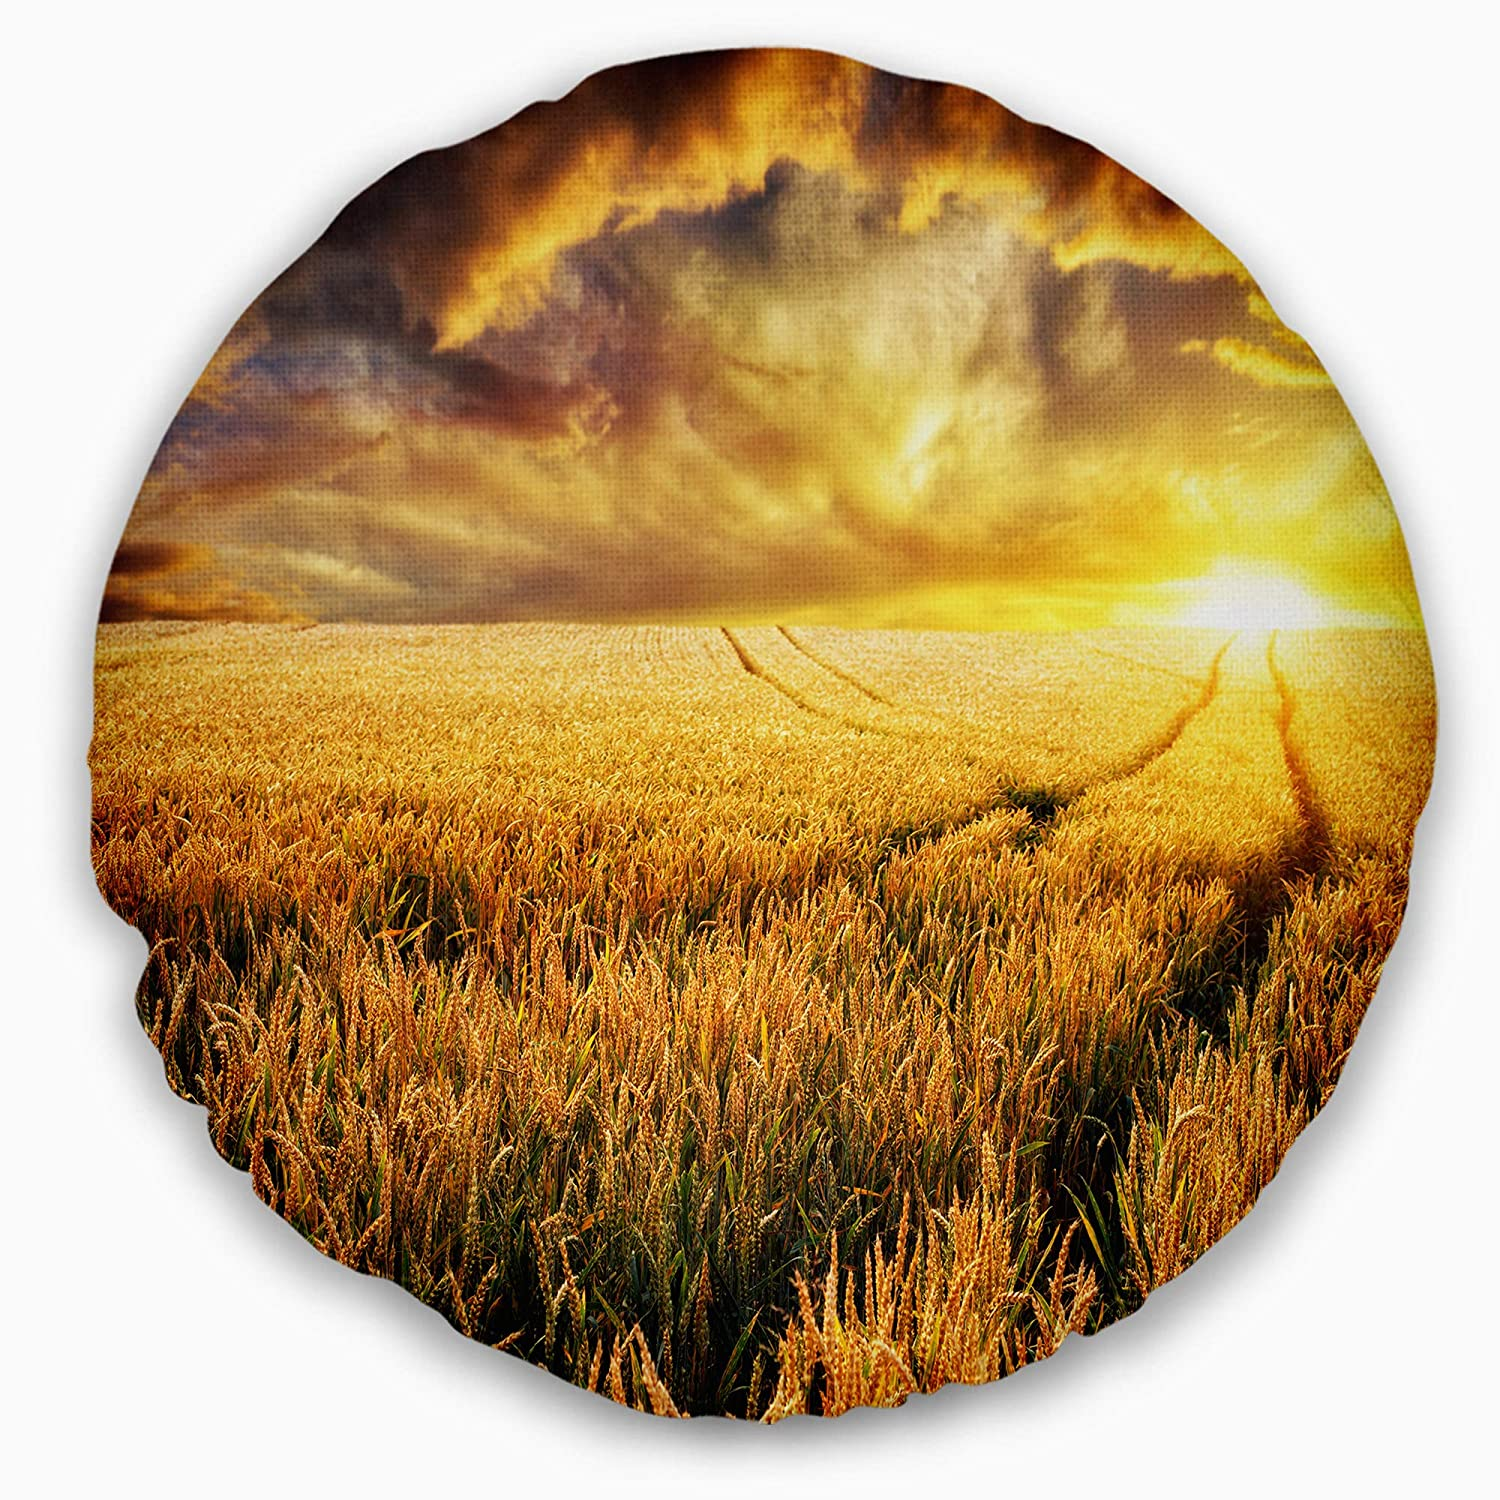 Designart CU14565-20-20-C Amazing Sunset Over Yellow Field' Landscape Printed Round Cushion Cover for Living Room, Sofa Throw Pillow 20'